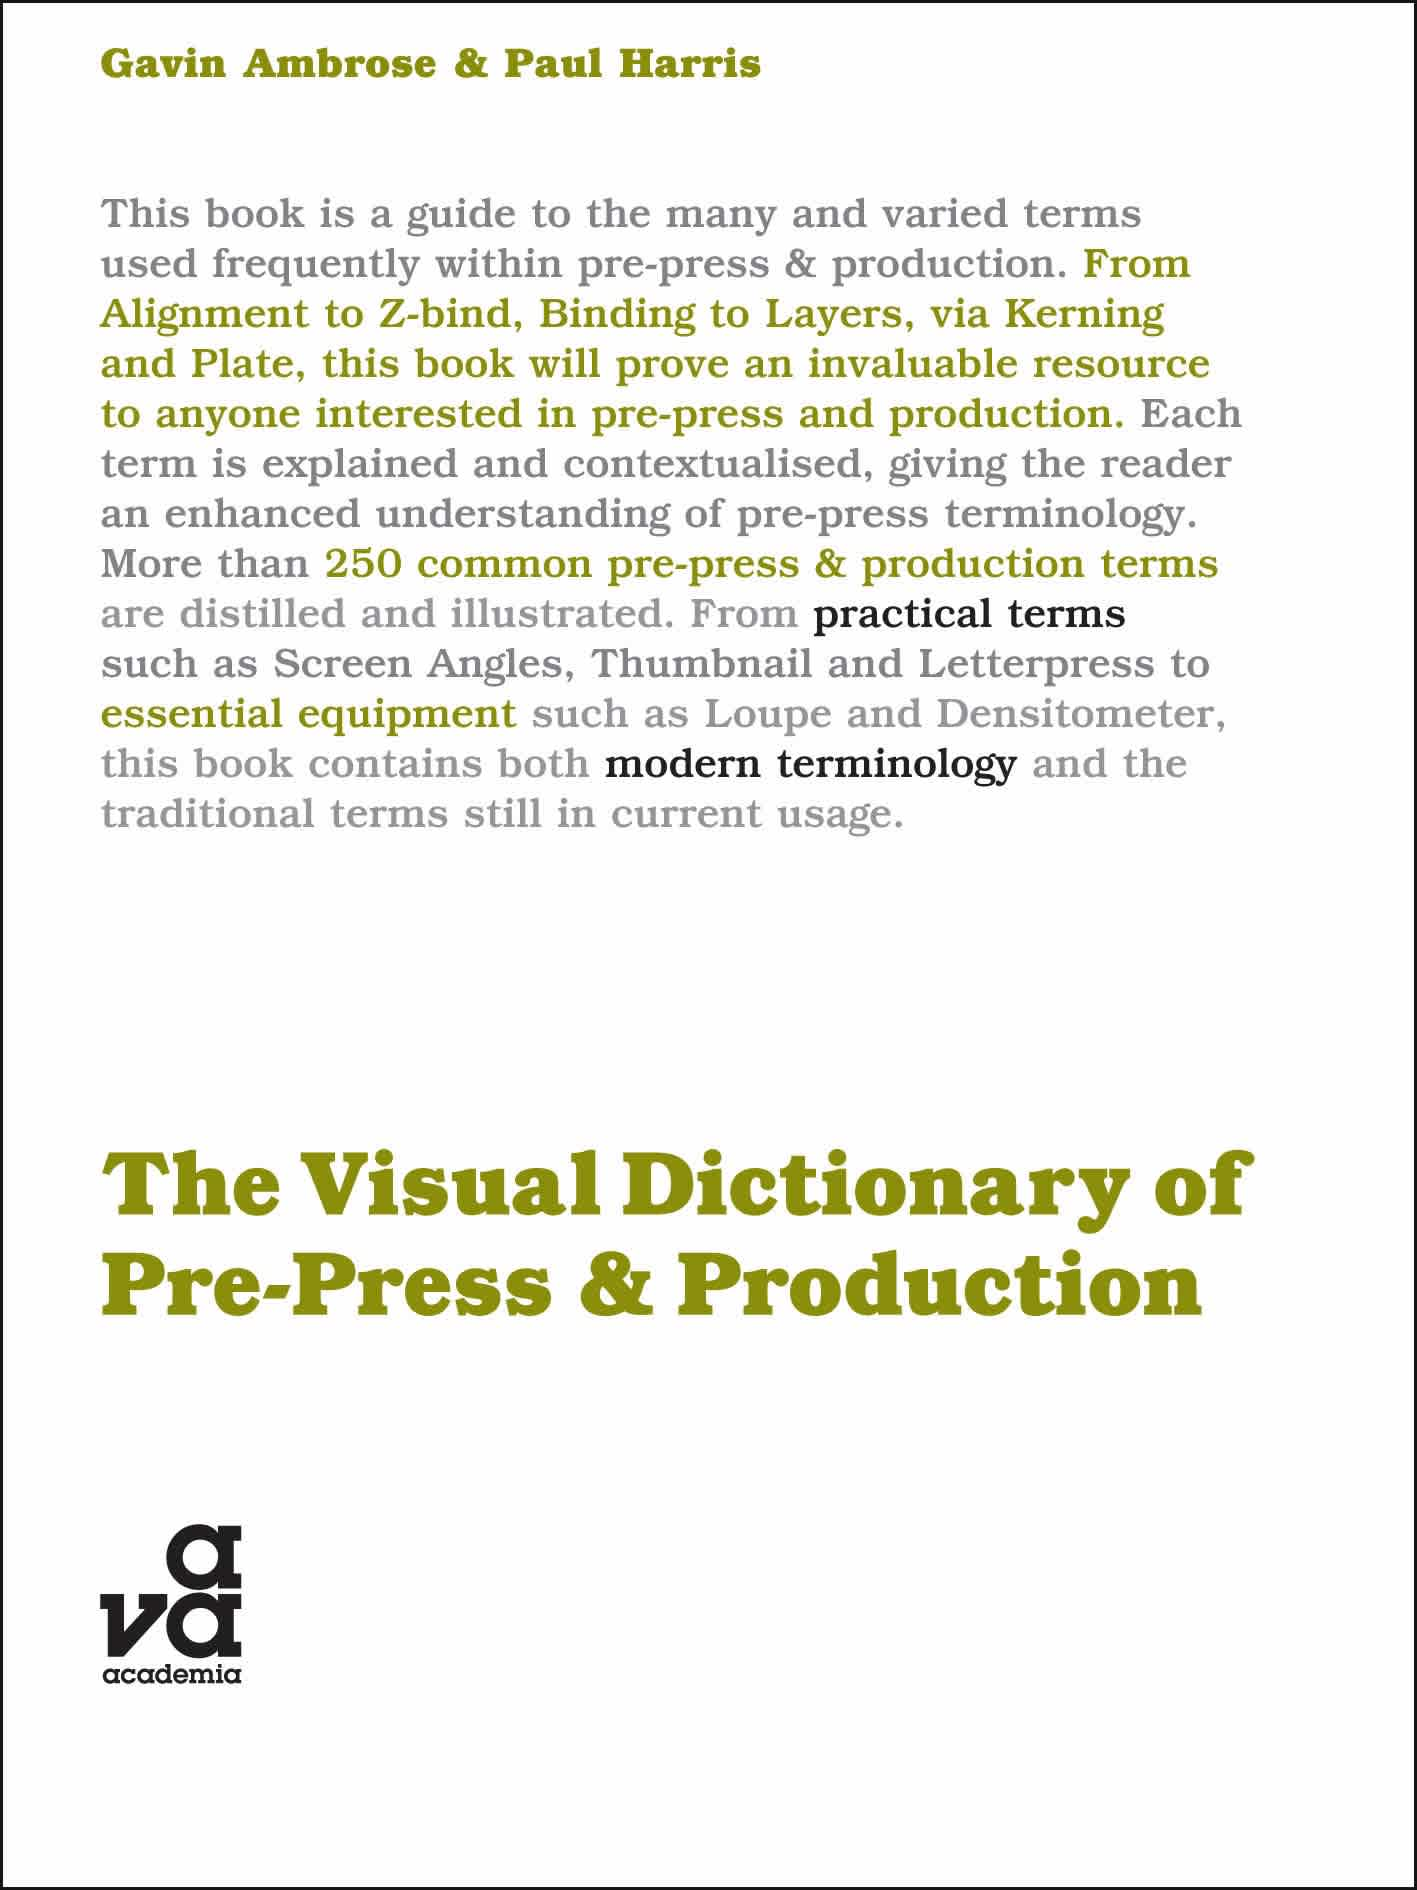 The Visual Dictionary of Pre-Press & Production